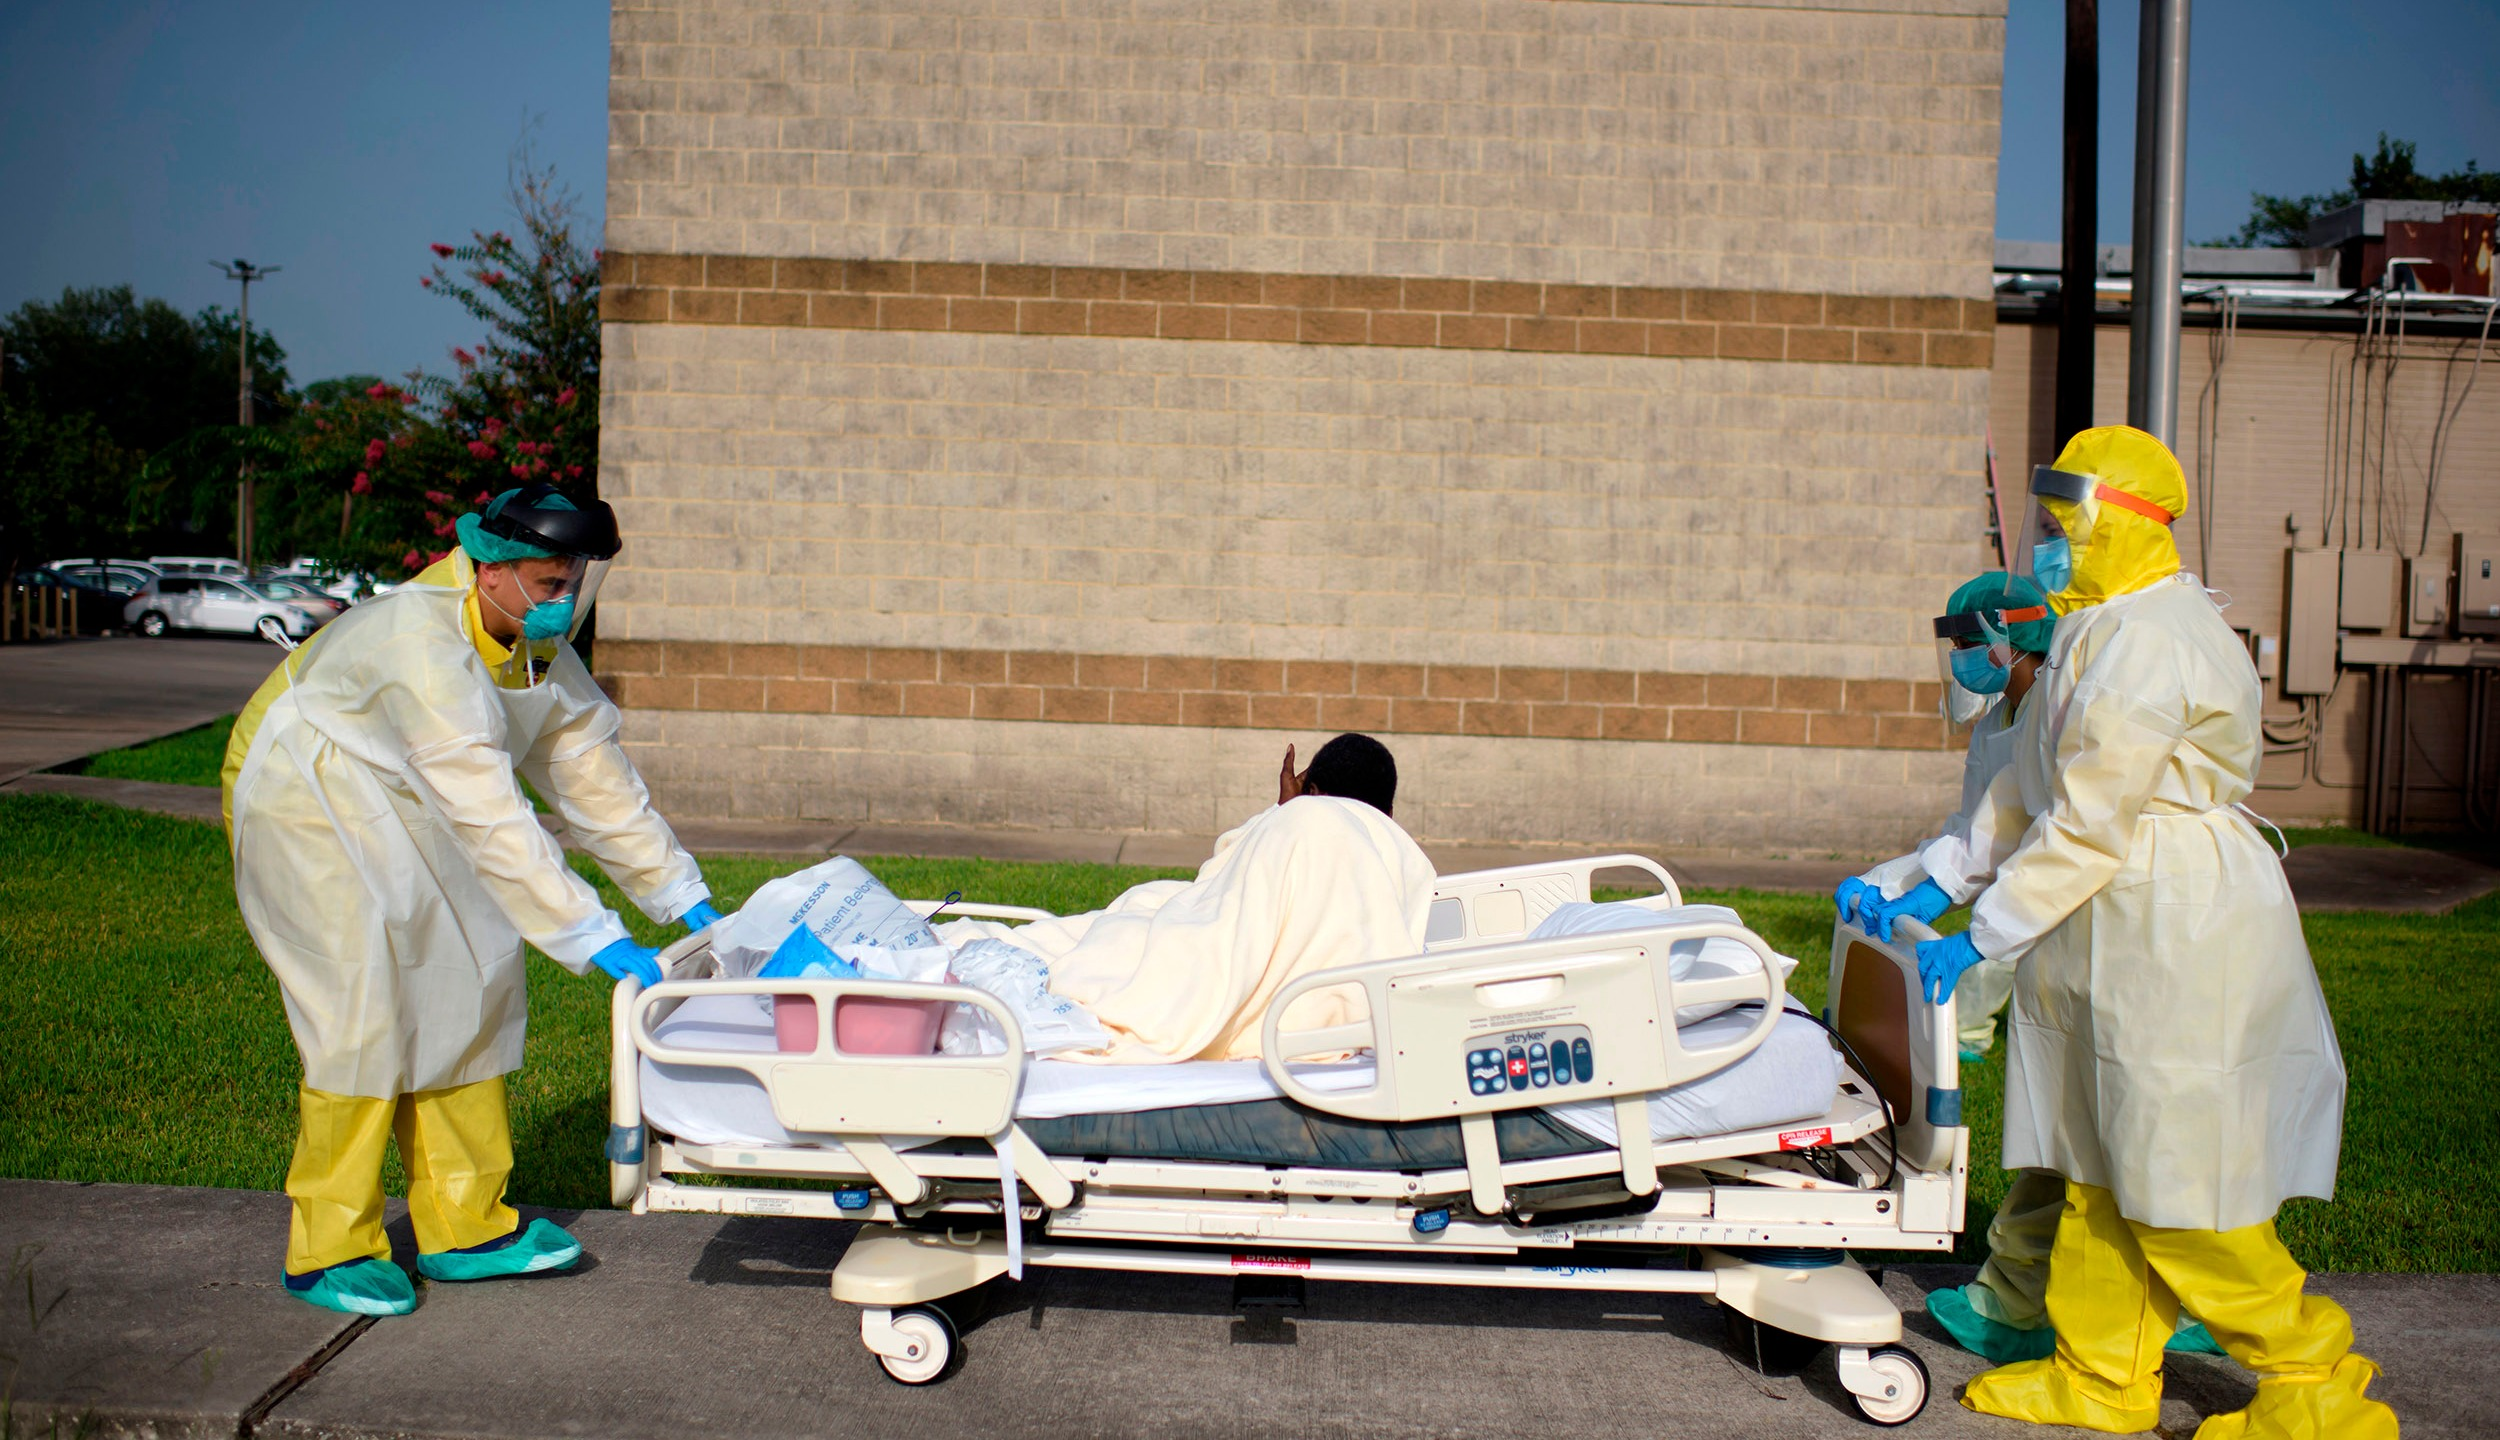 Health care workers push a patient into a less intensive unit from the COVID-19 unit at United Memorial Medical Center in Houston, Texas on July 2, 2020. (MARK FELIX/AFP via Getty Images)